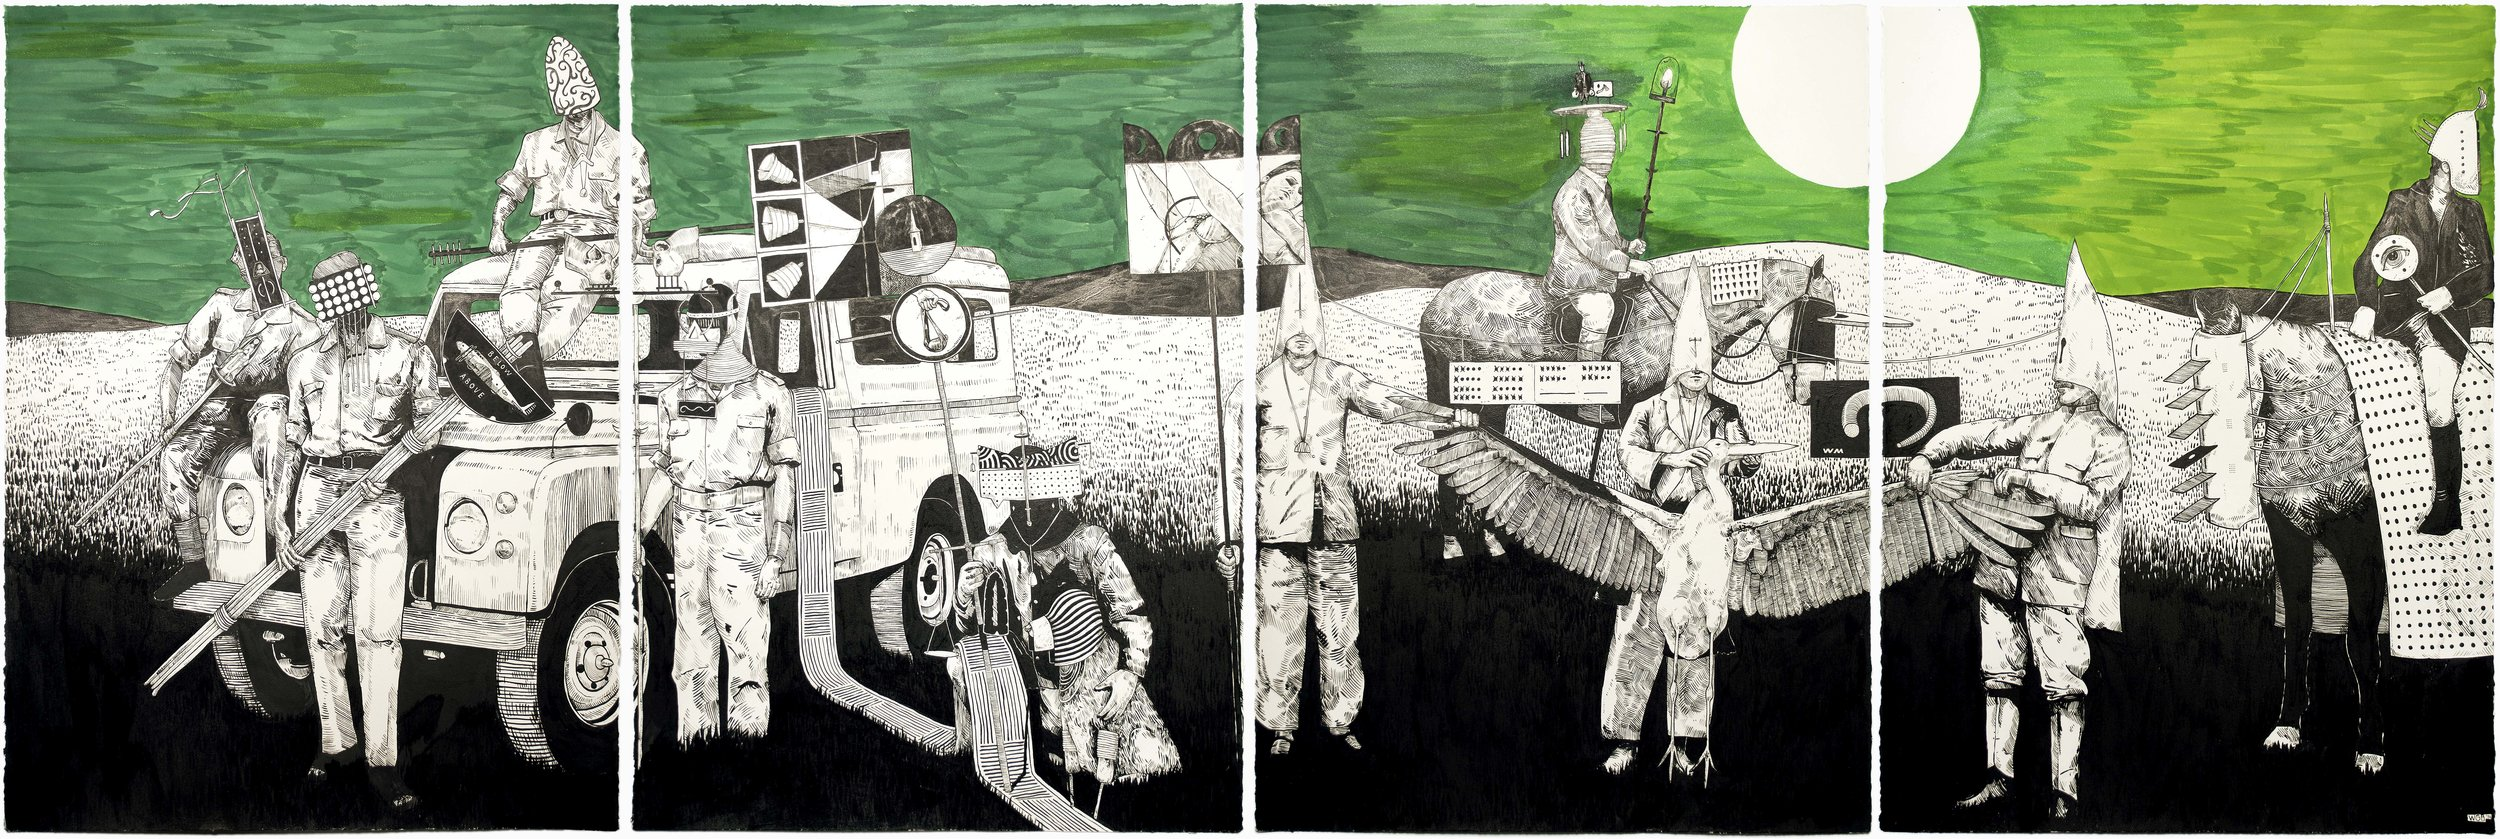 The Tide Has Turned #6 , 2014 India ink on paper 30 x 88 inches (quadriptych)